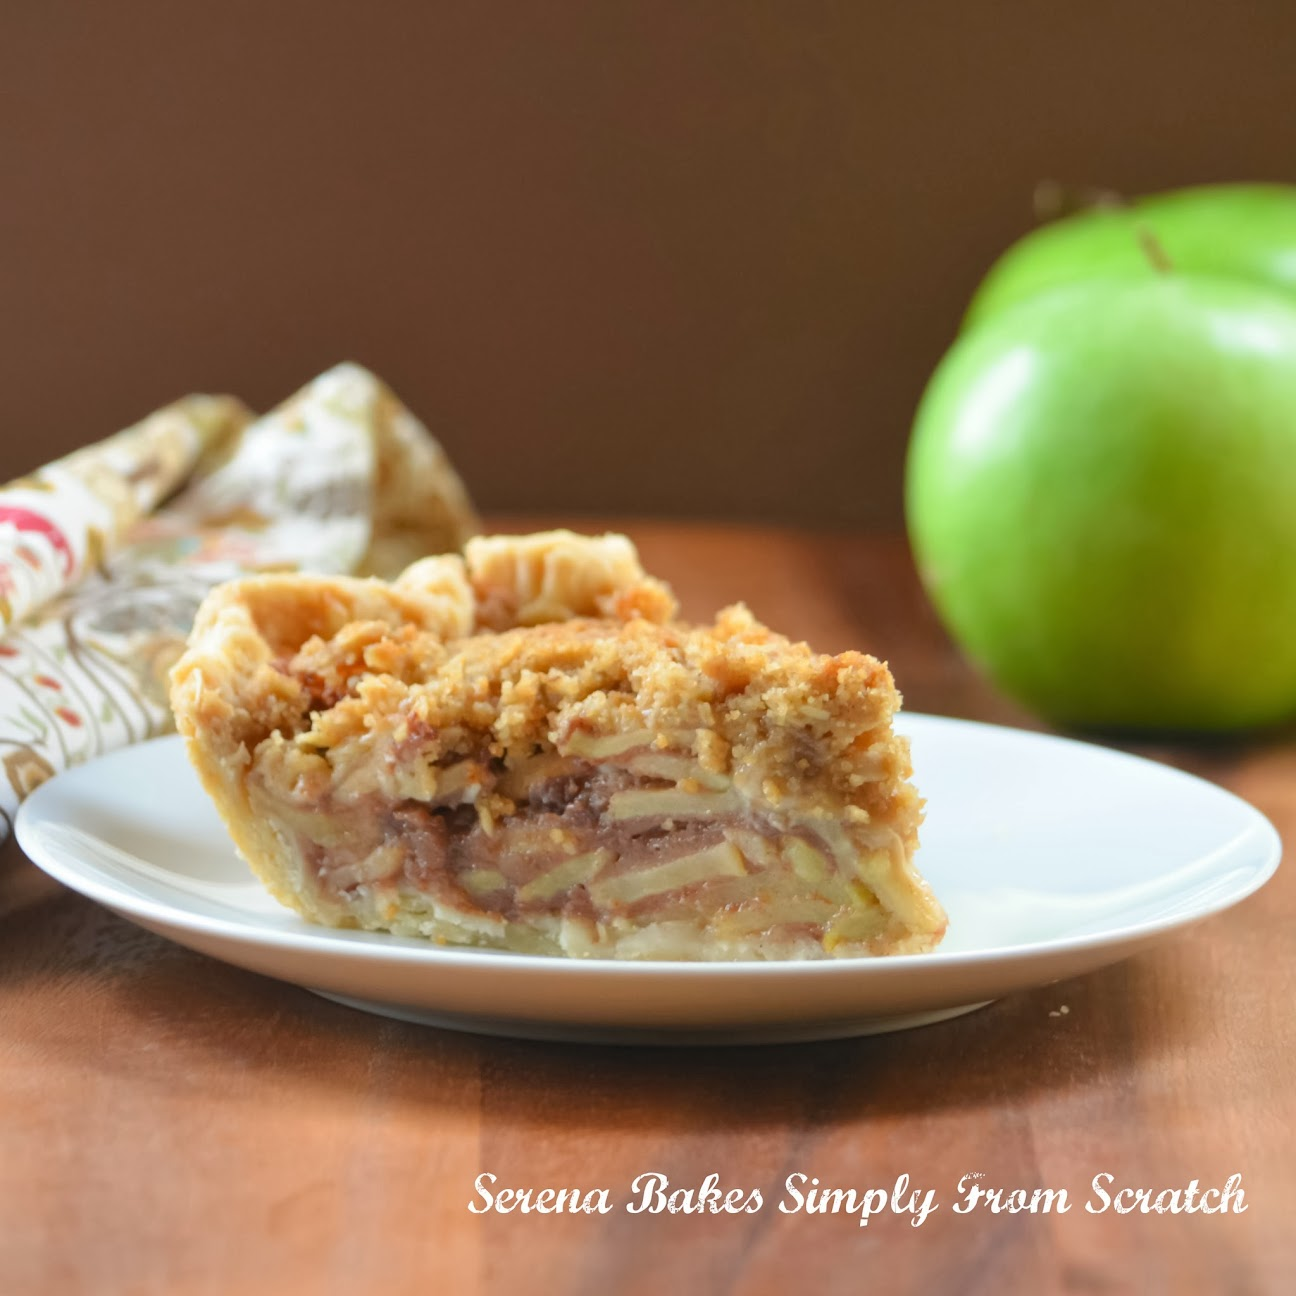 Caramely Apple Pie With Crunch Topping is a fall must have. serenabakessimplyfromscratch.com